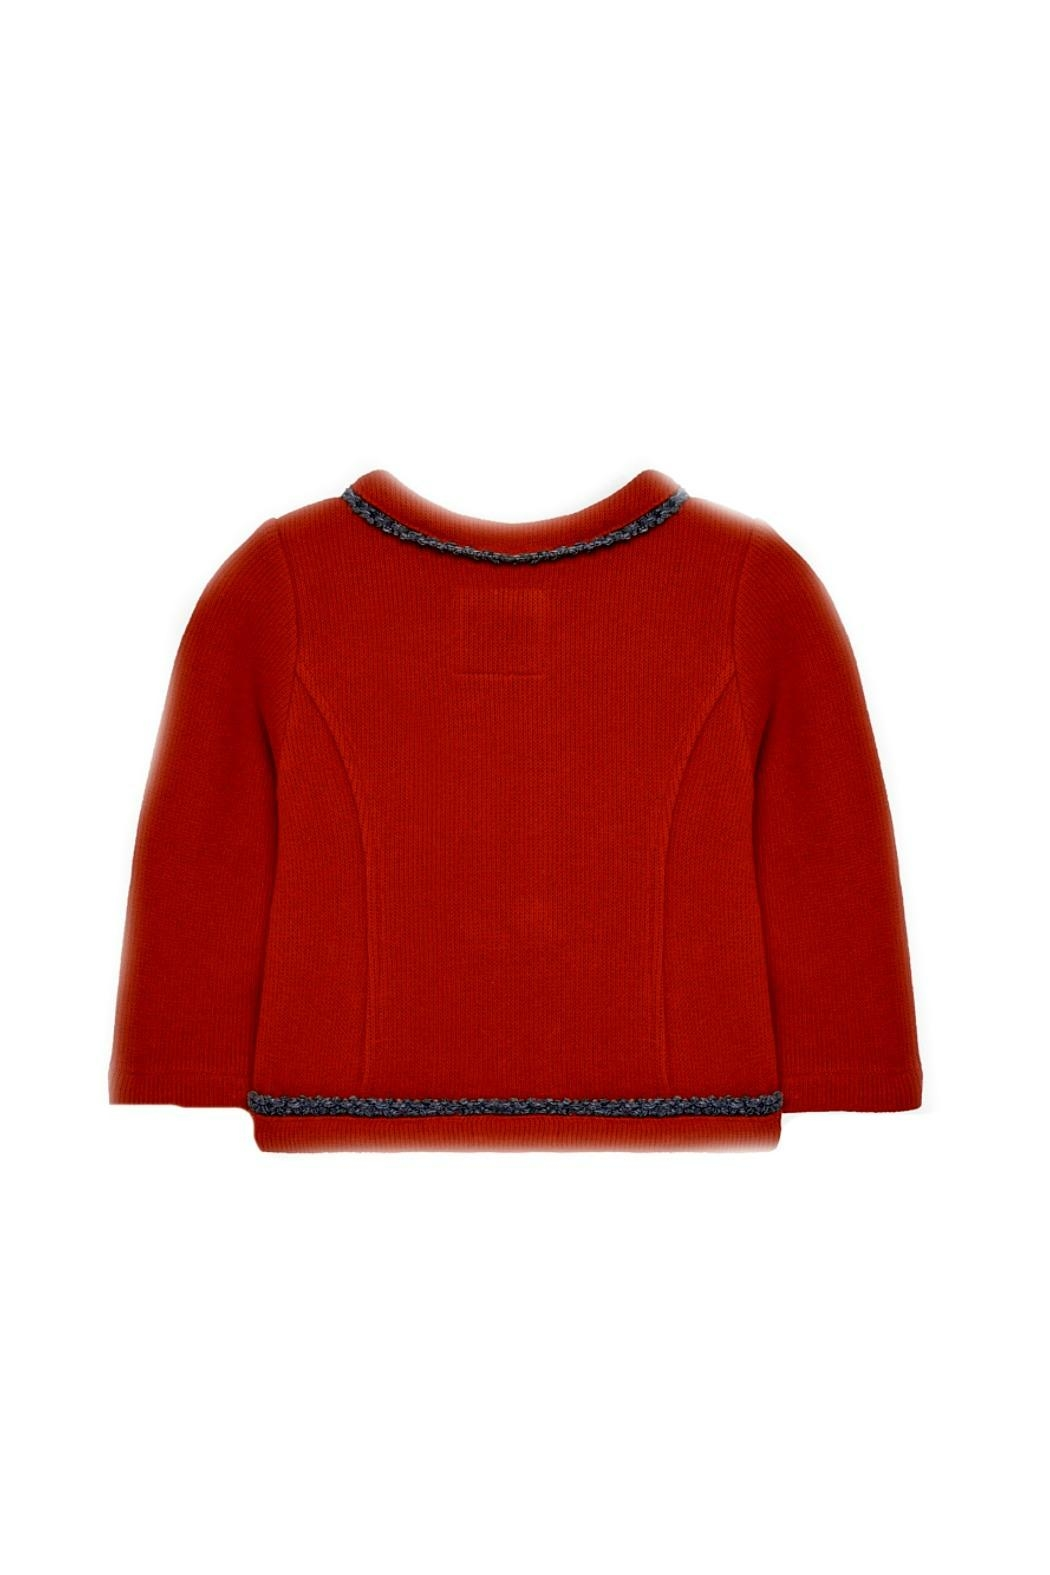 f589f266dbd1 Mayoral Baby-Girl-Red-Zip-Up-Cardigan-Jacket from South Carolina by ...